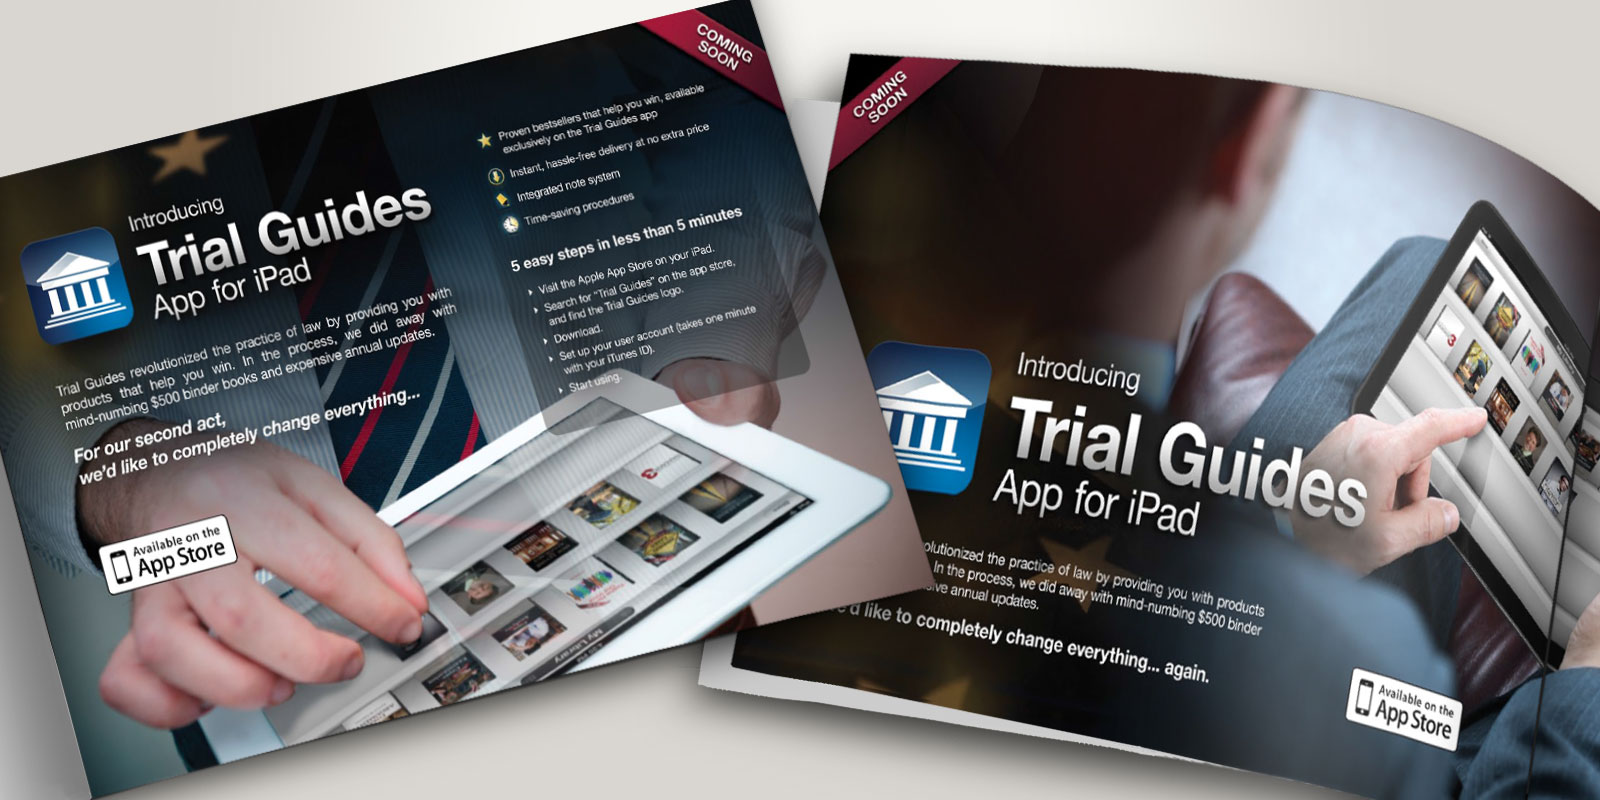 Trial Guides advertisements